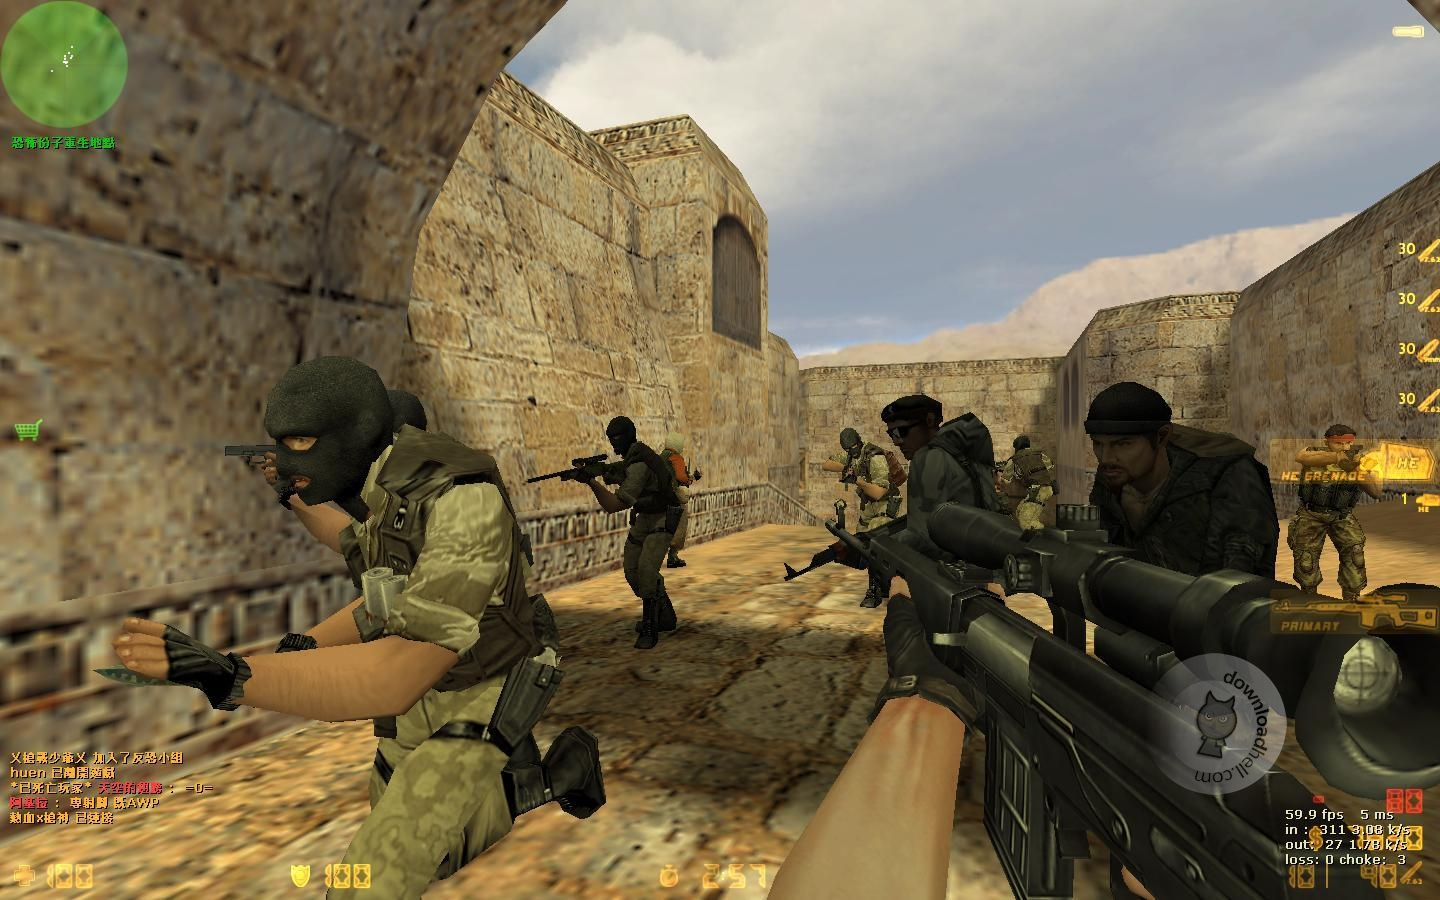 a comprehensive analysis of the counter strike video game phenomen in computer gaming And the it guys may stick around after hours for a game of counter-strike use video games to the phenomenon entirely to gaming.